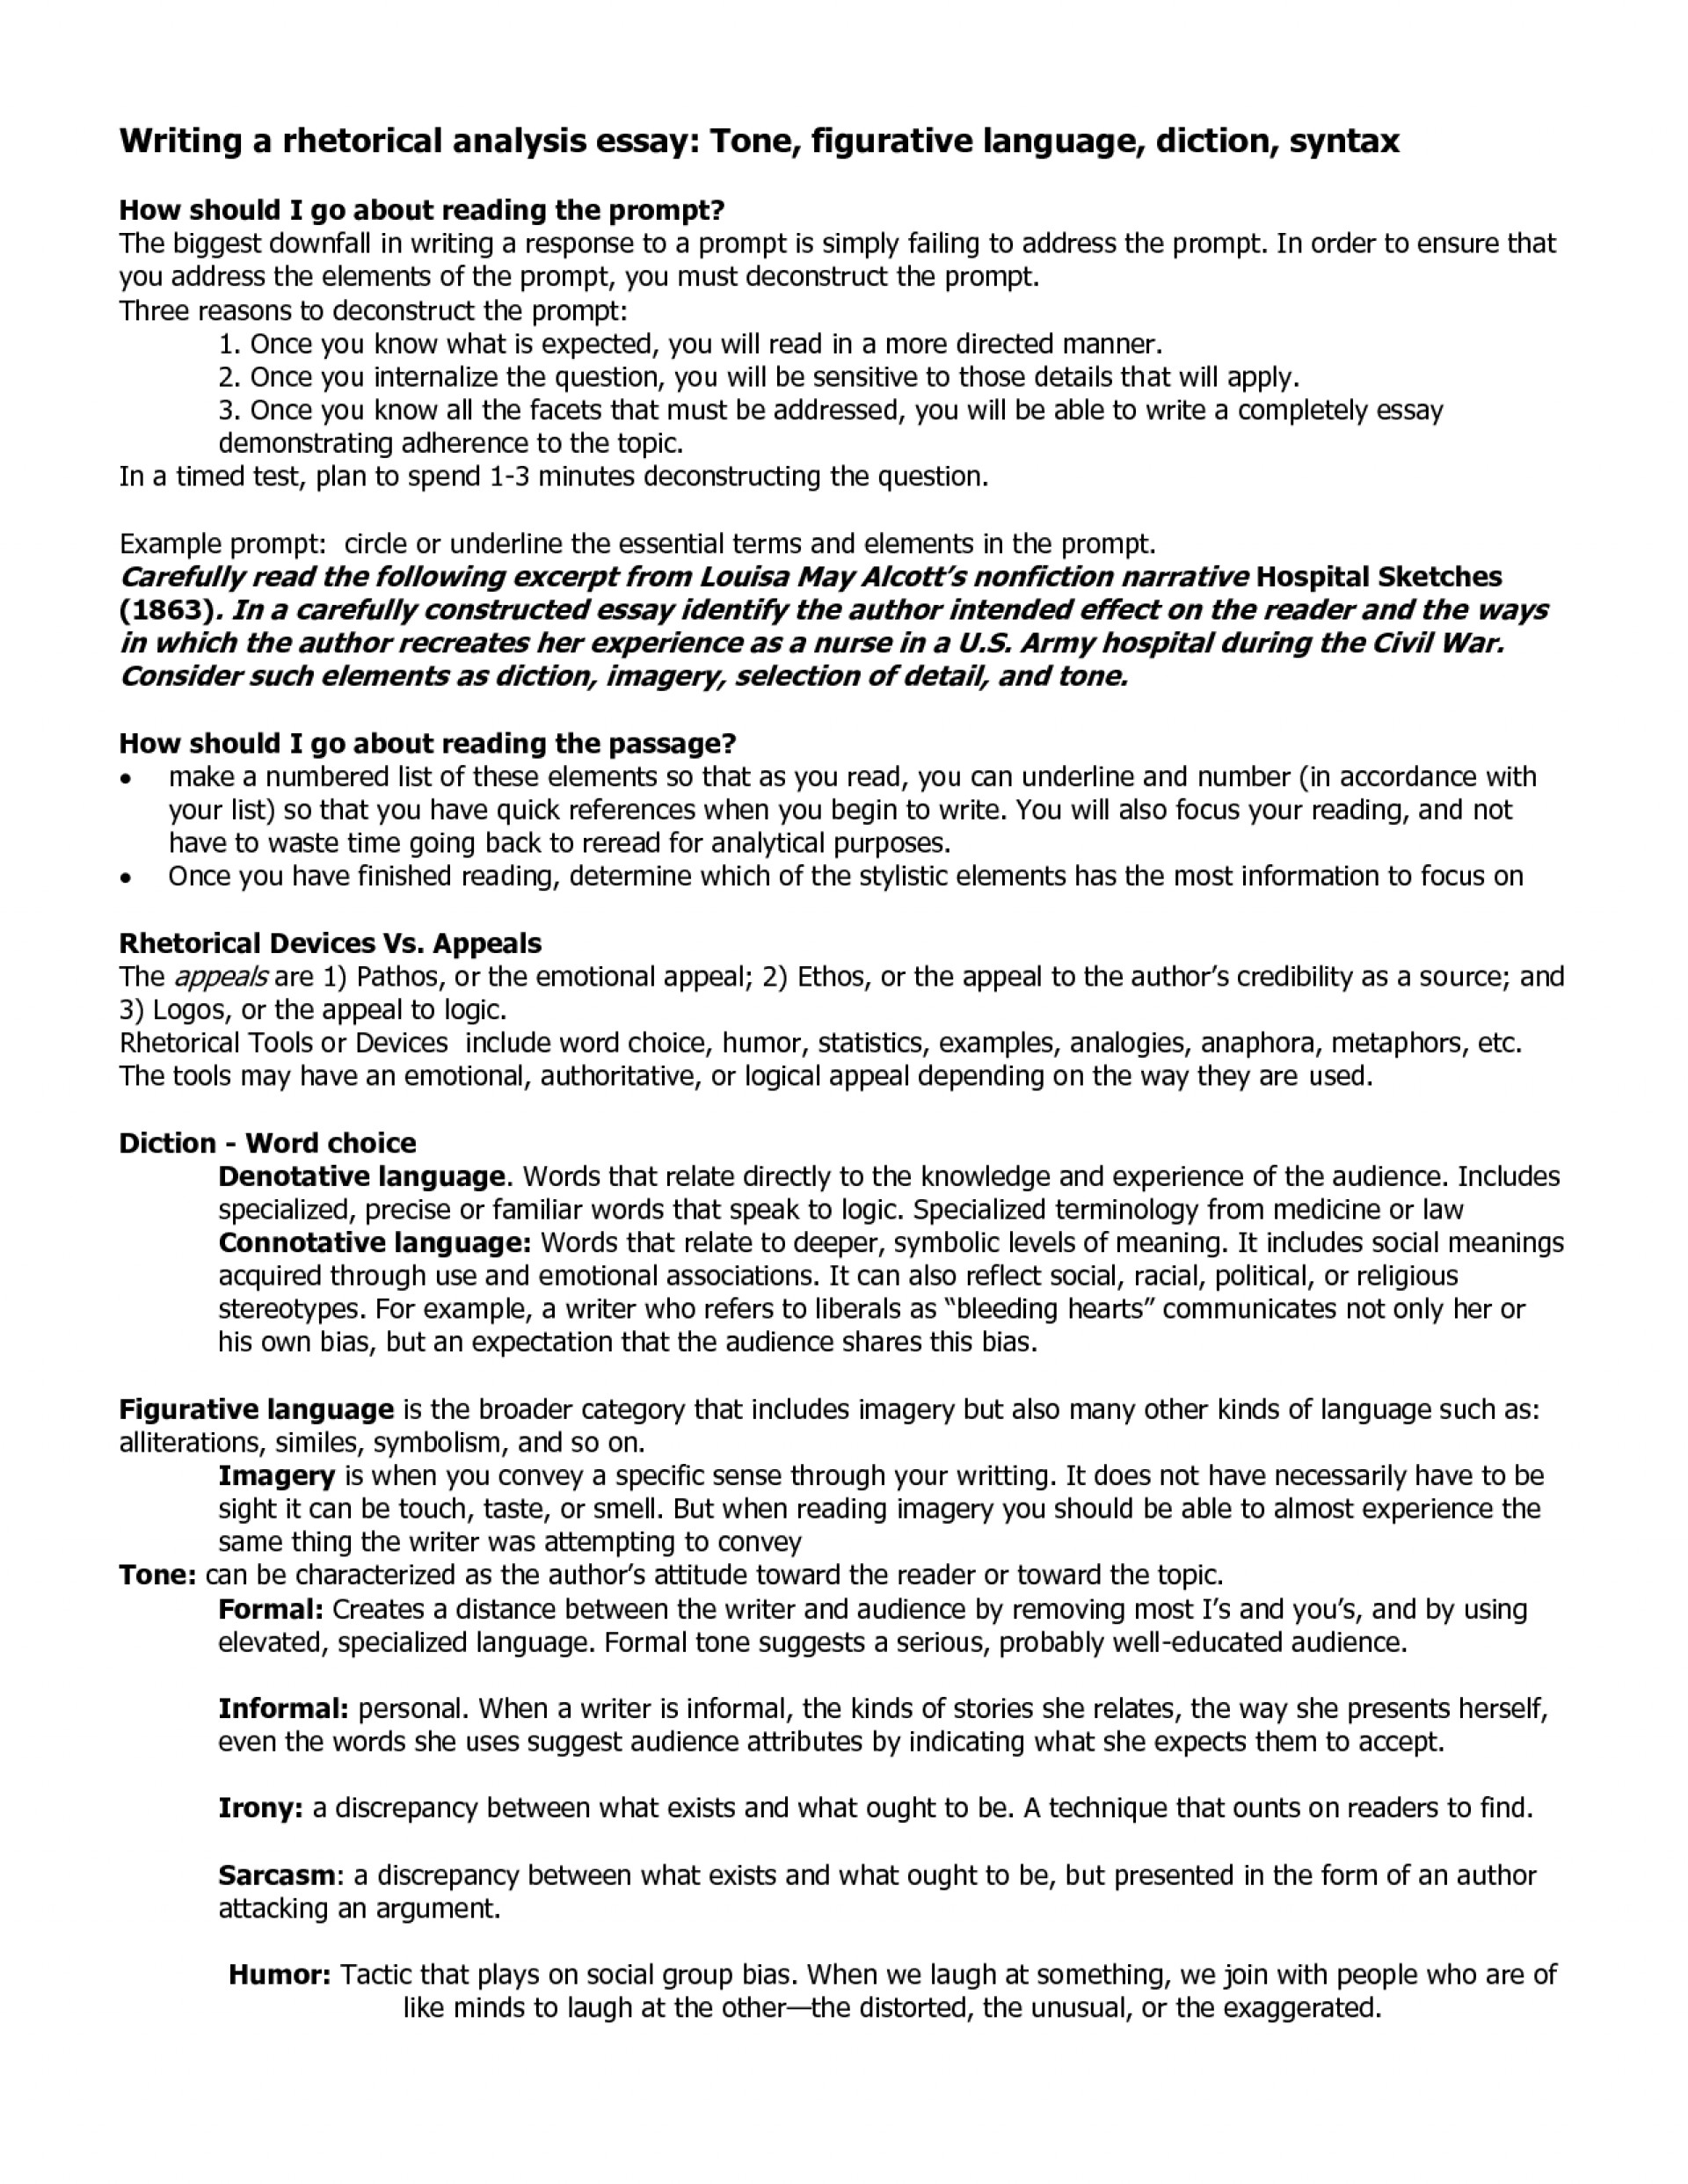 004 4v5jglfvmn Essay Example Check My Top Free For Punctuation Errors Plagiarism Mac Paper 1920